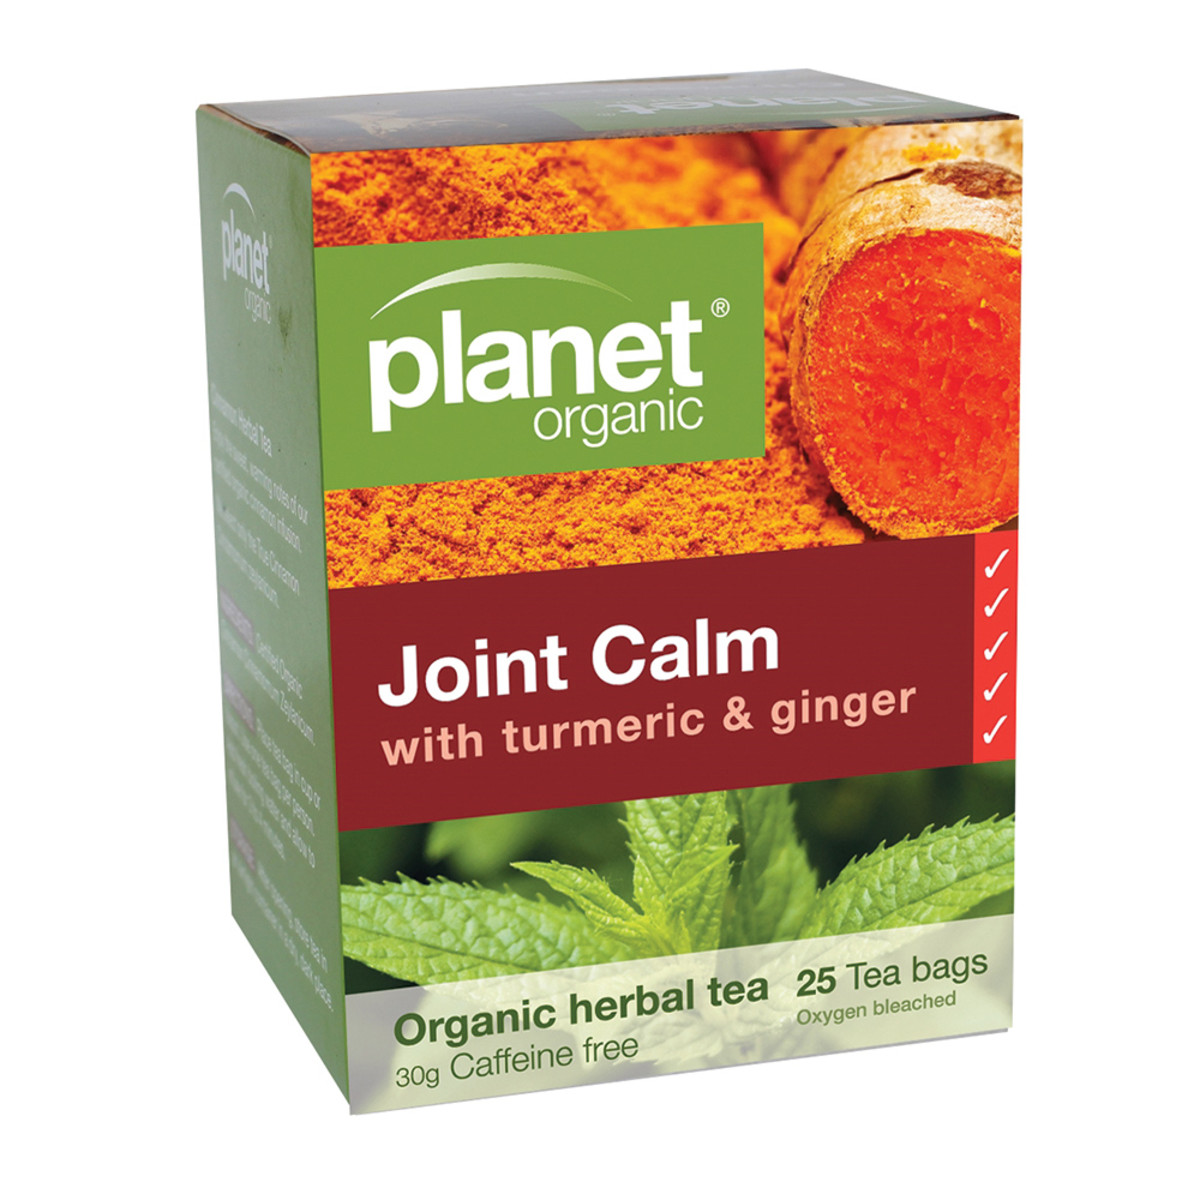 PLANET ORGANIC JOINT CALM TURMERIC & GINGER 25TB